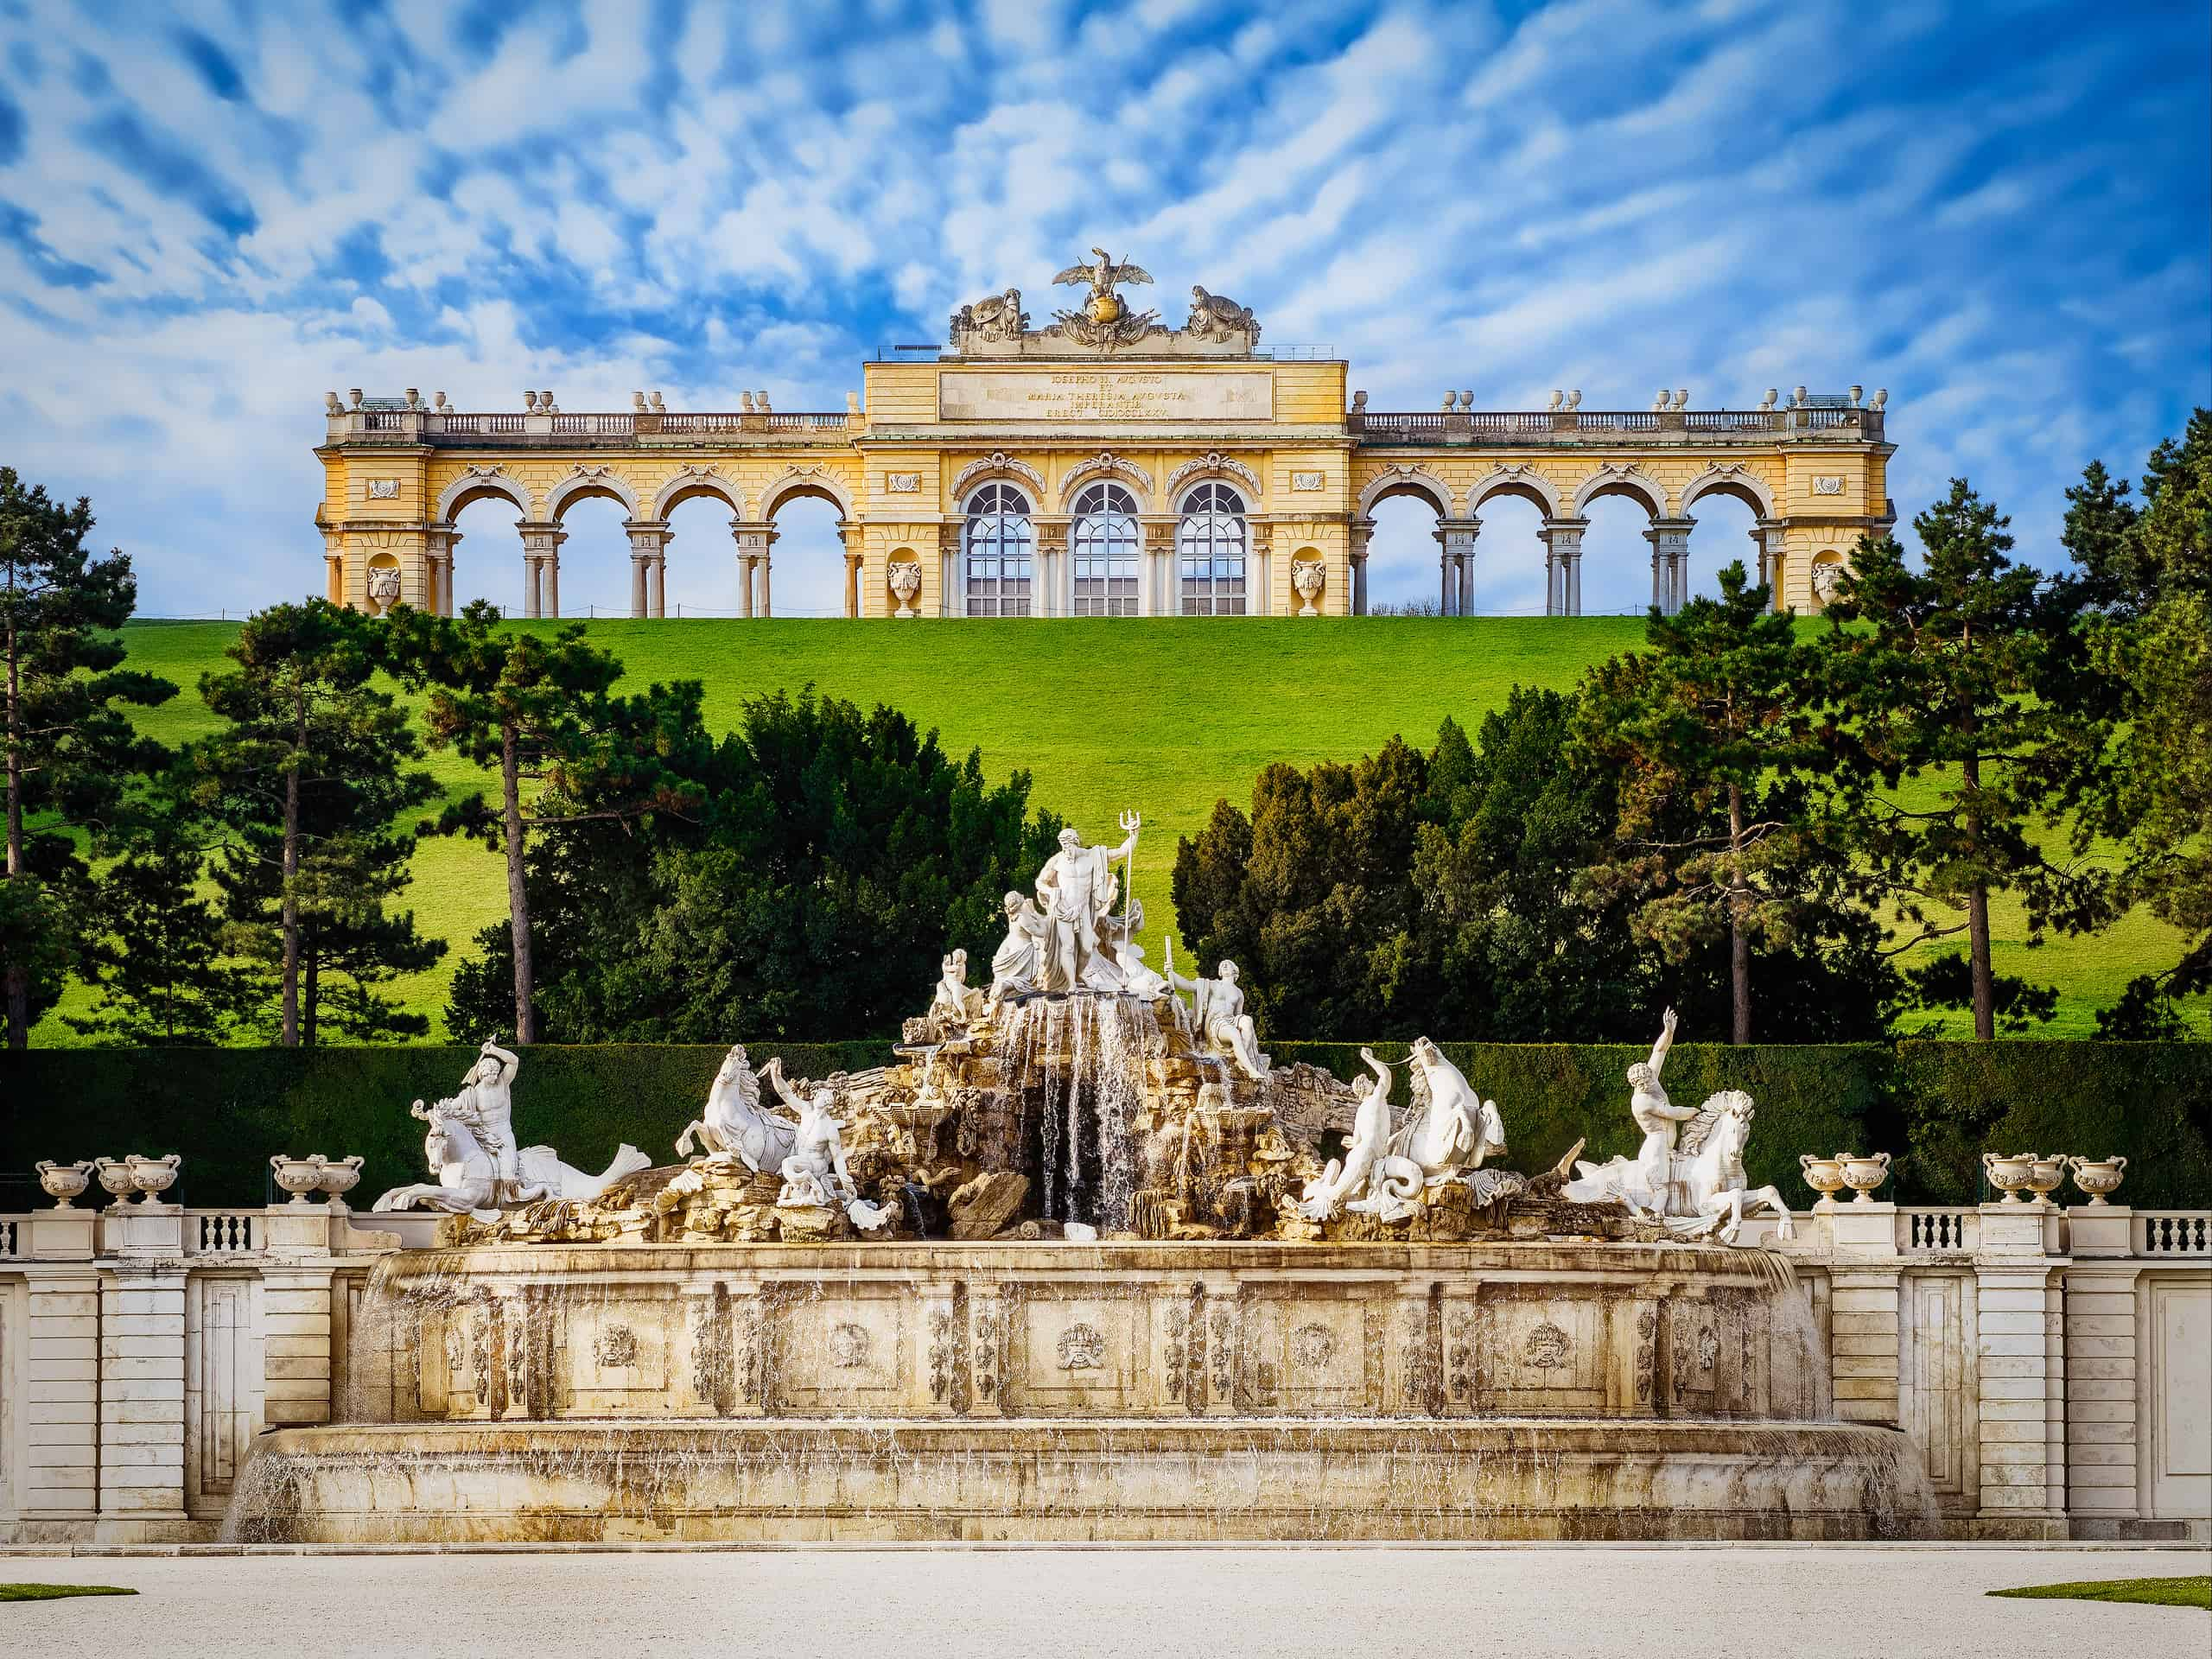 A view of the Gloriette